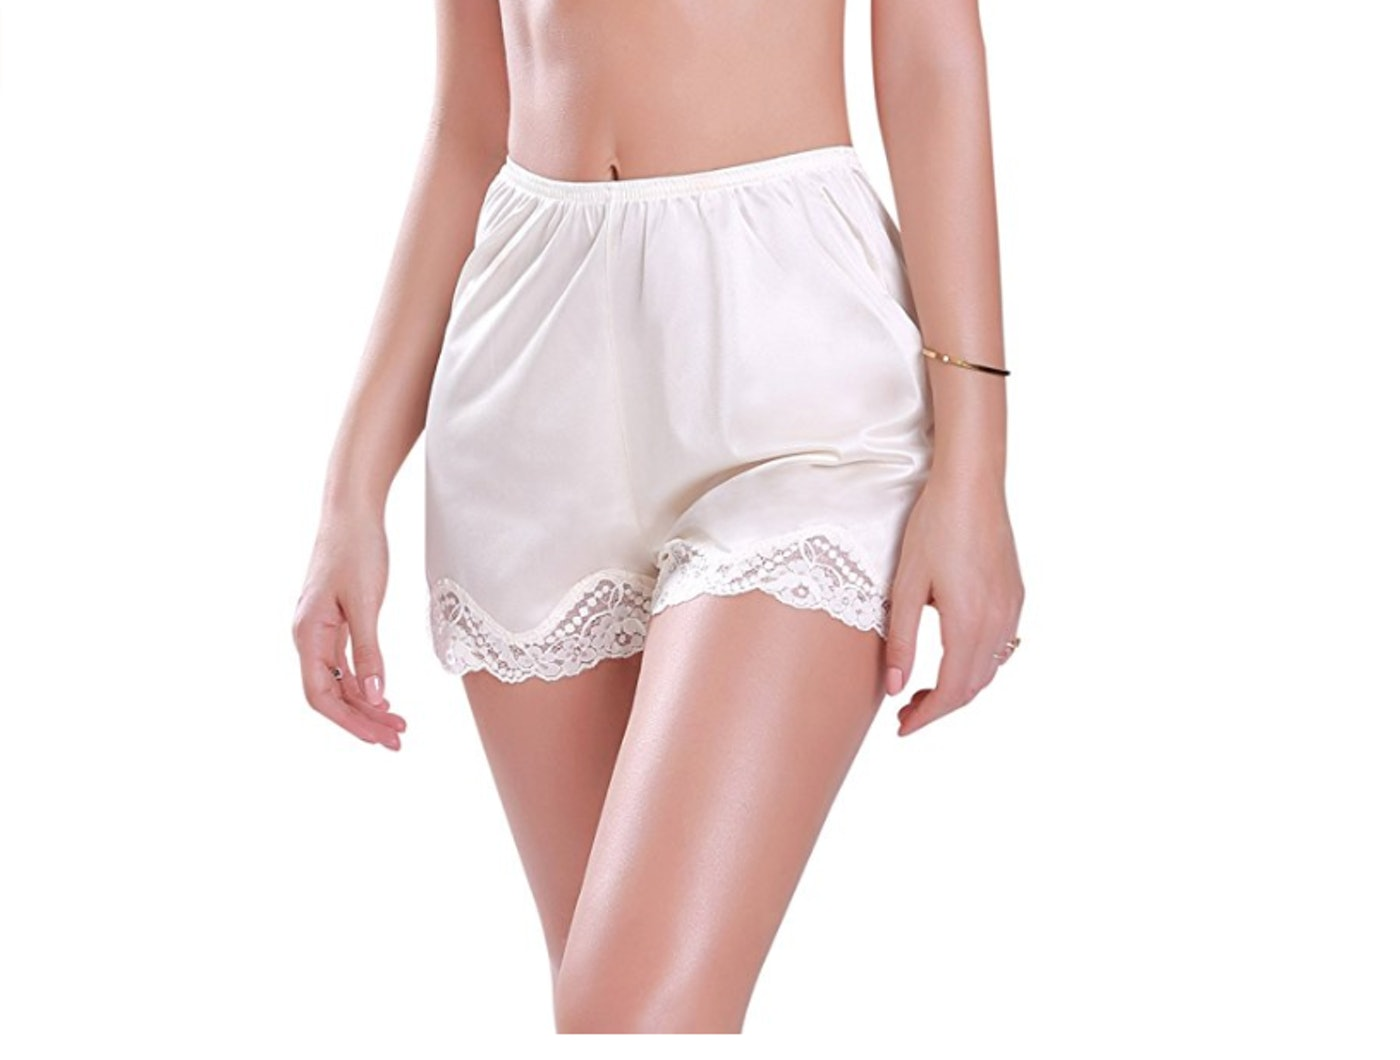 1f5e380e723c 10 Best Undies For Skirts & Dresses When You Want More Coverage, Because  Wind